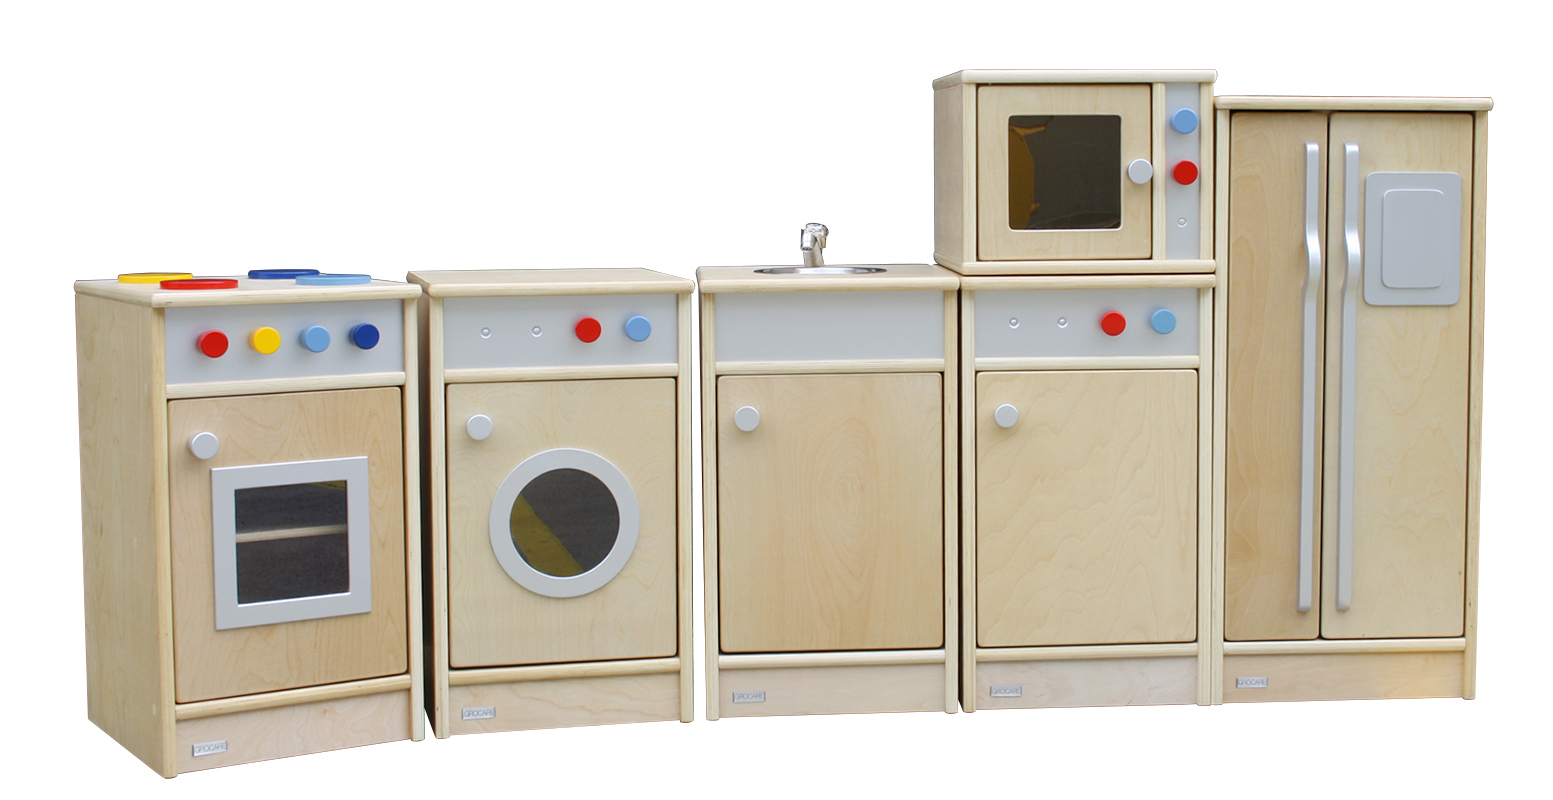 Birch Natural Role Play Toddler Kitchen Set - 6pcs